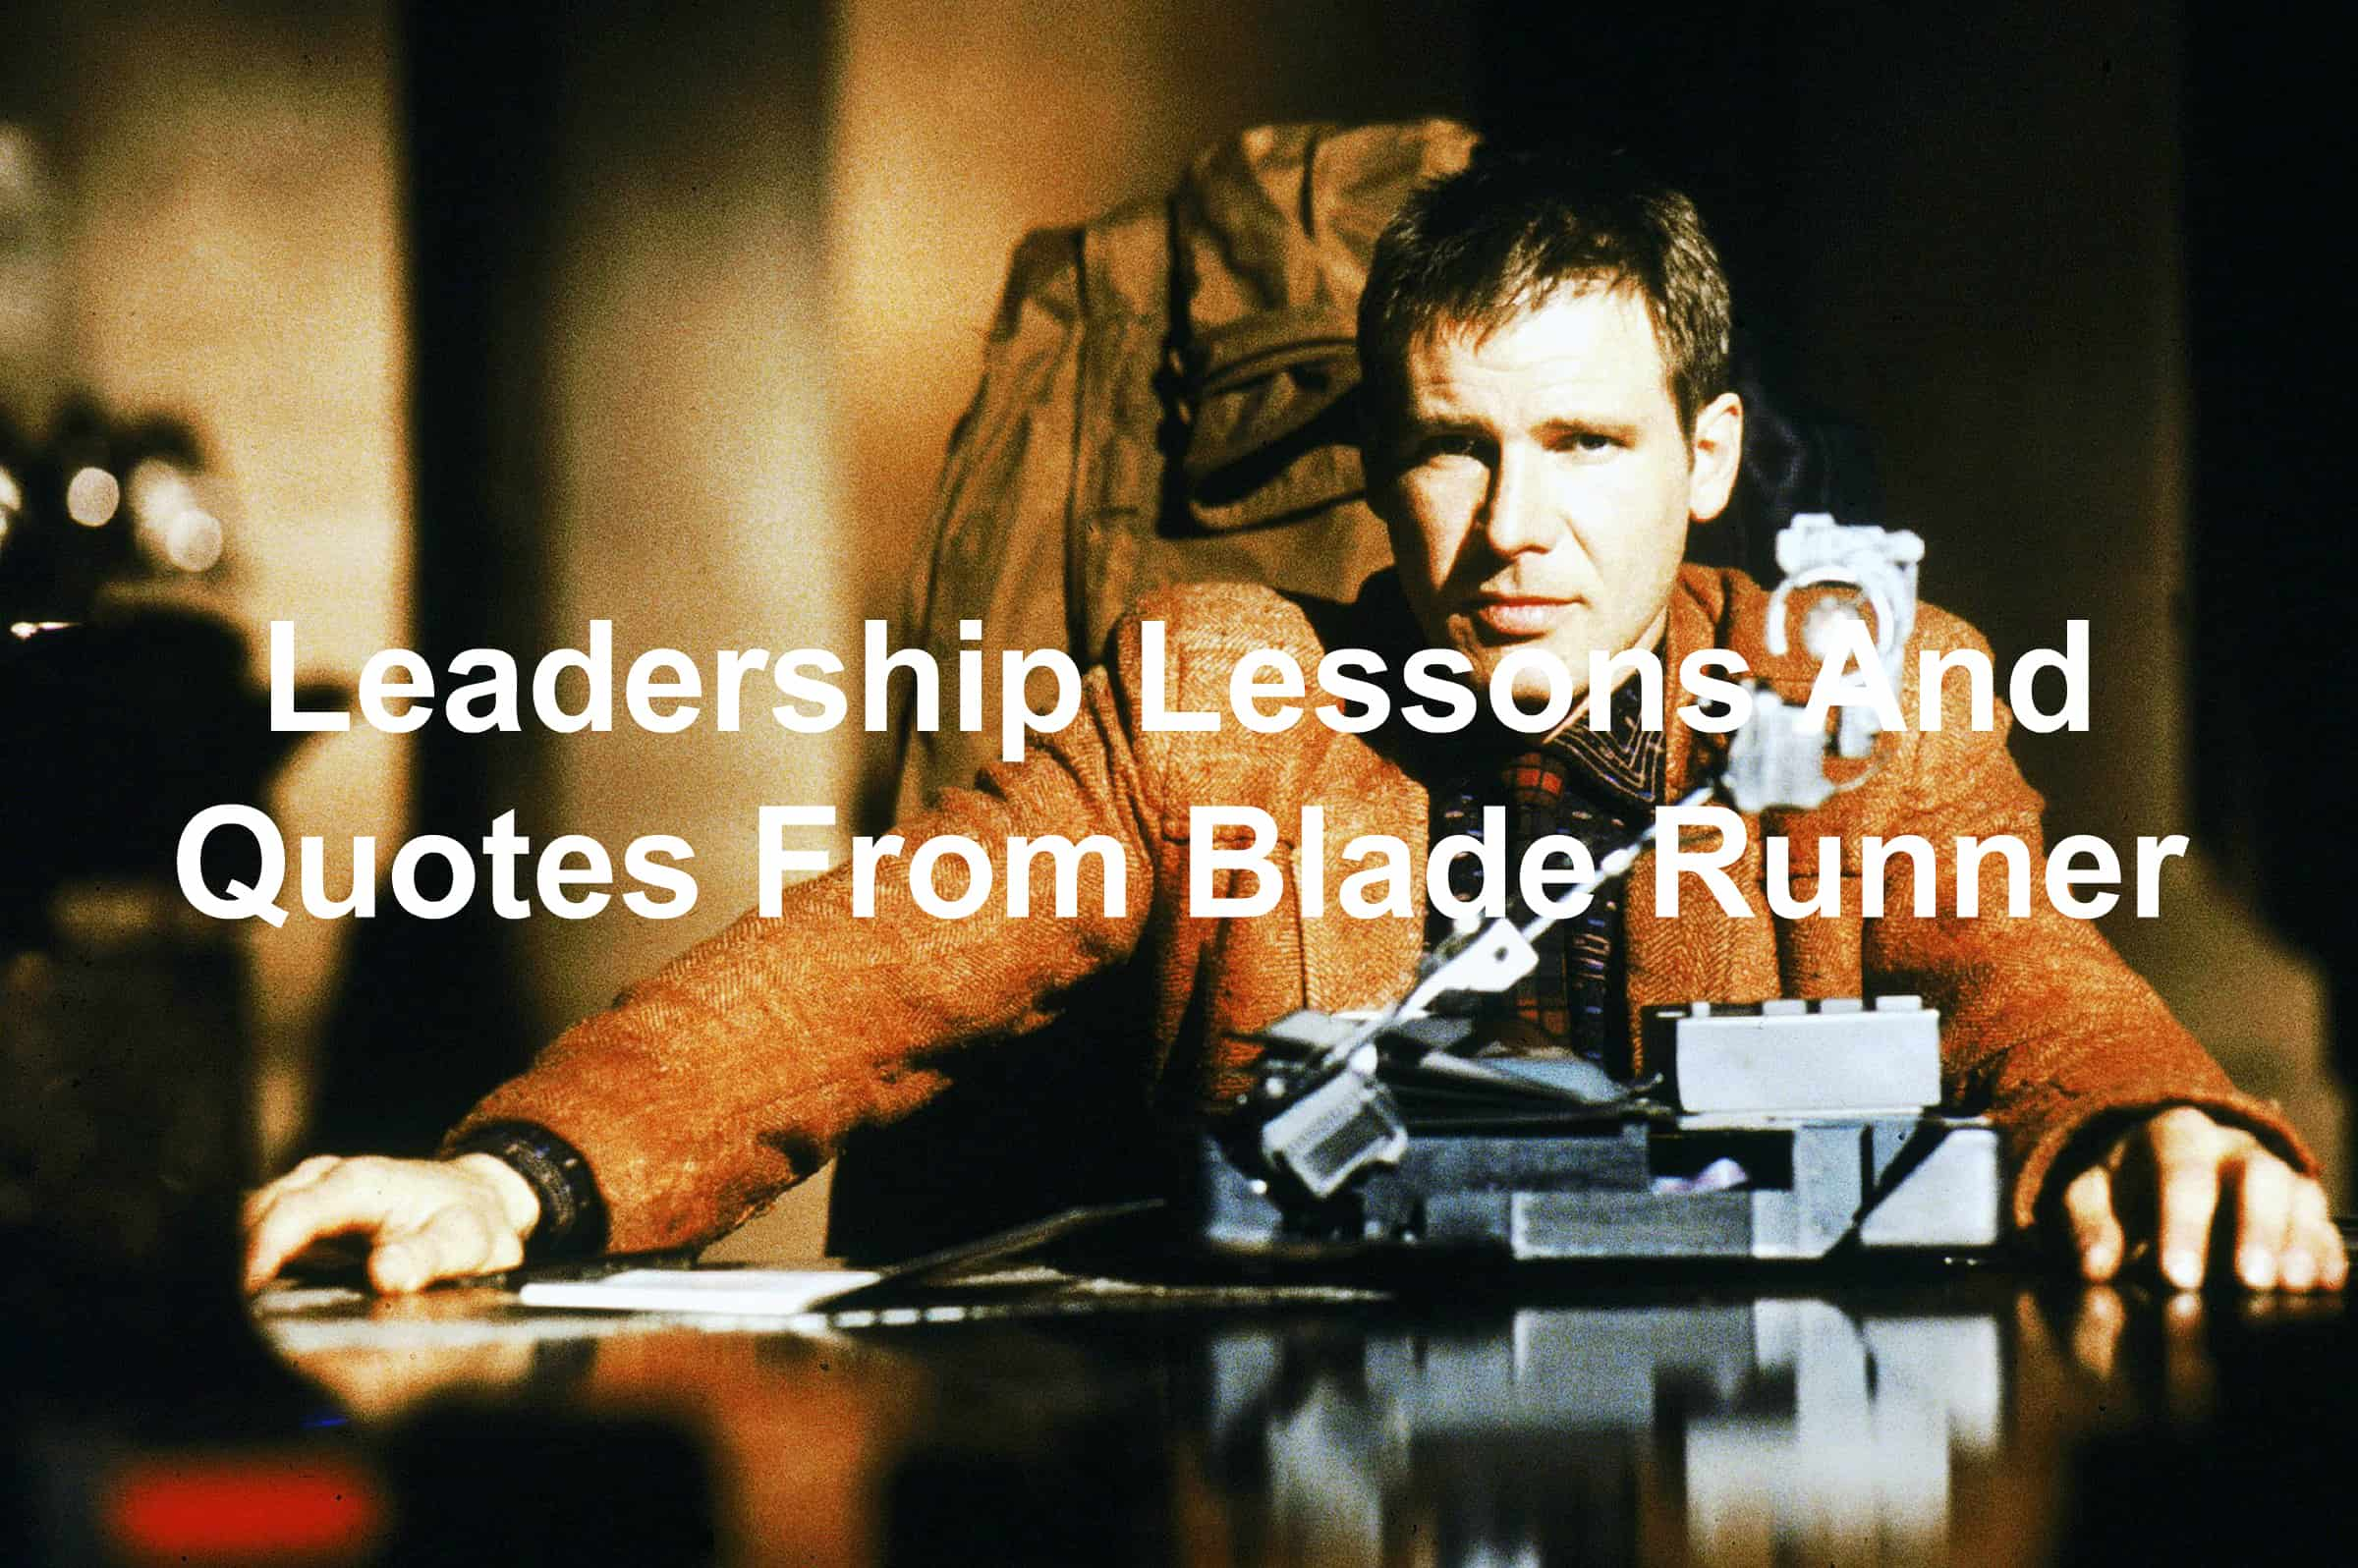 quotes and leadership lessons from Blade Runner